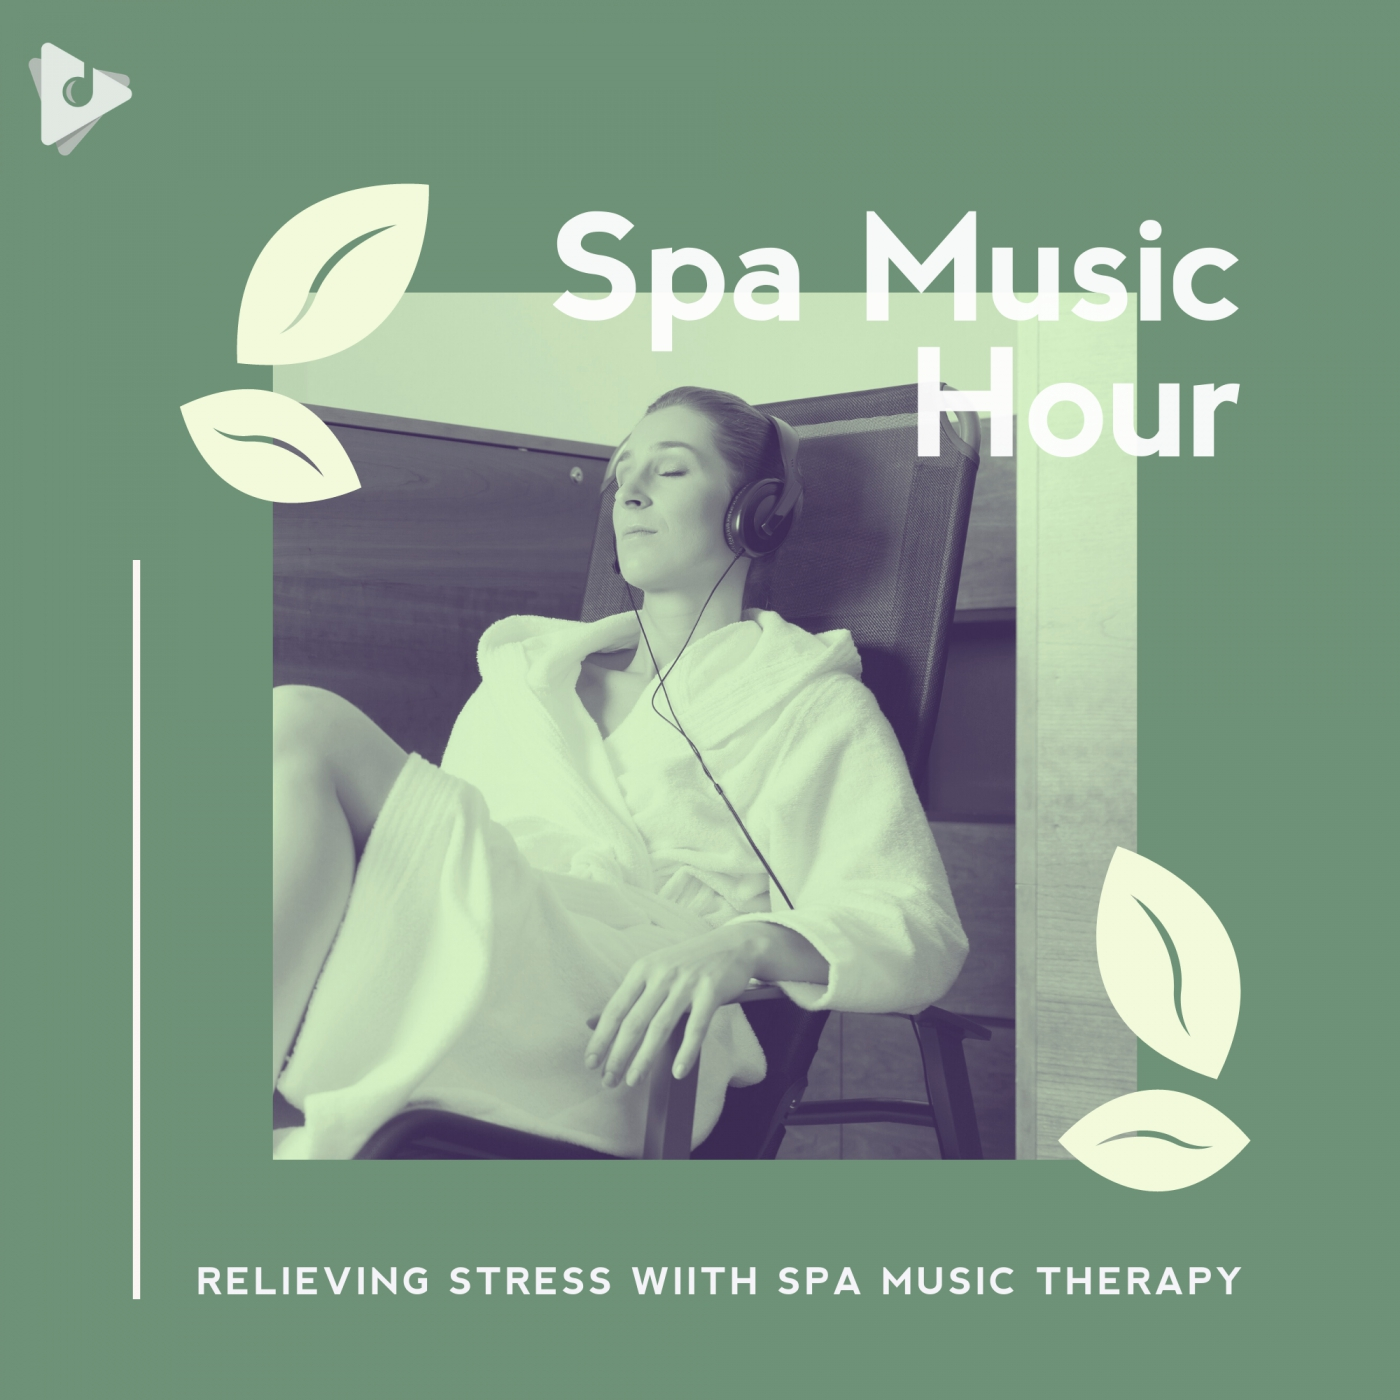 Relieving Stress wiith Spa Music Therapy